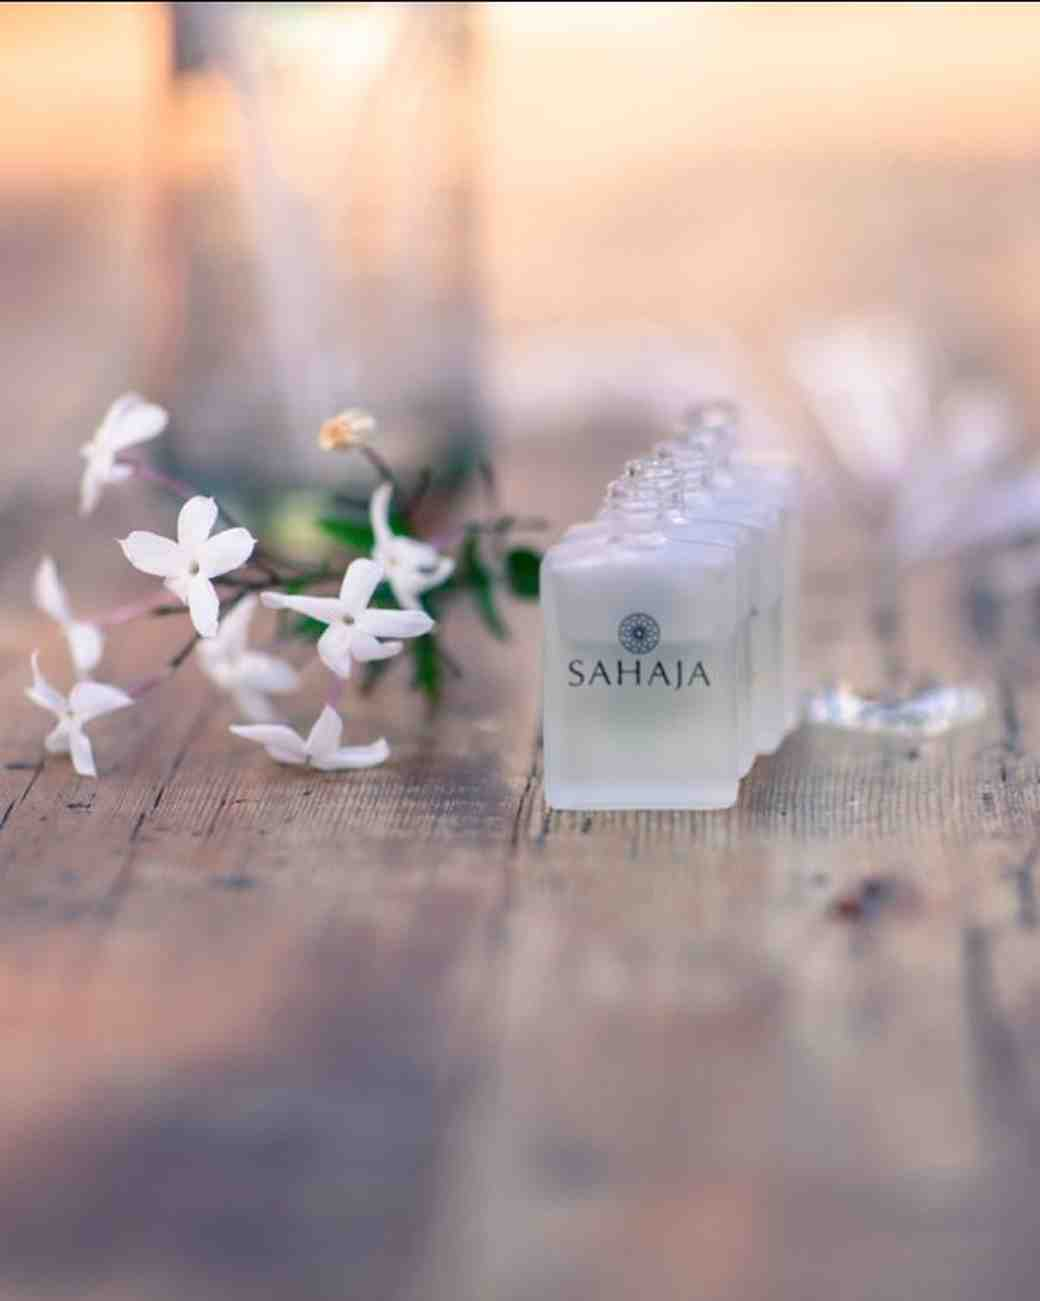 Sahaja Essential Oil wedding fragrance and advice